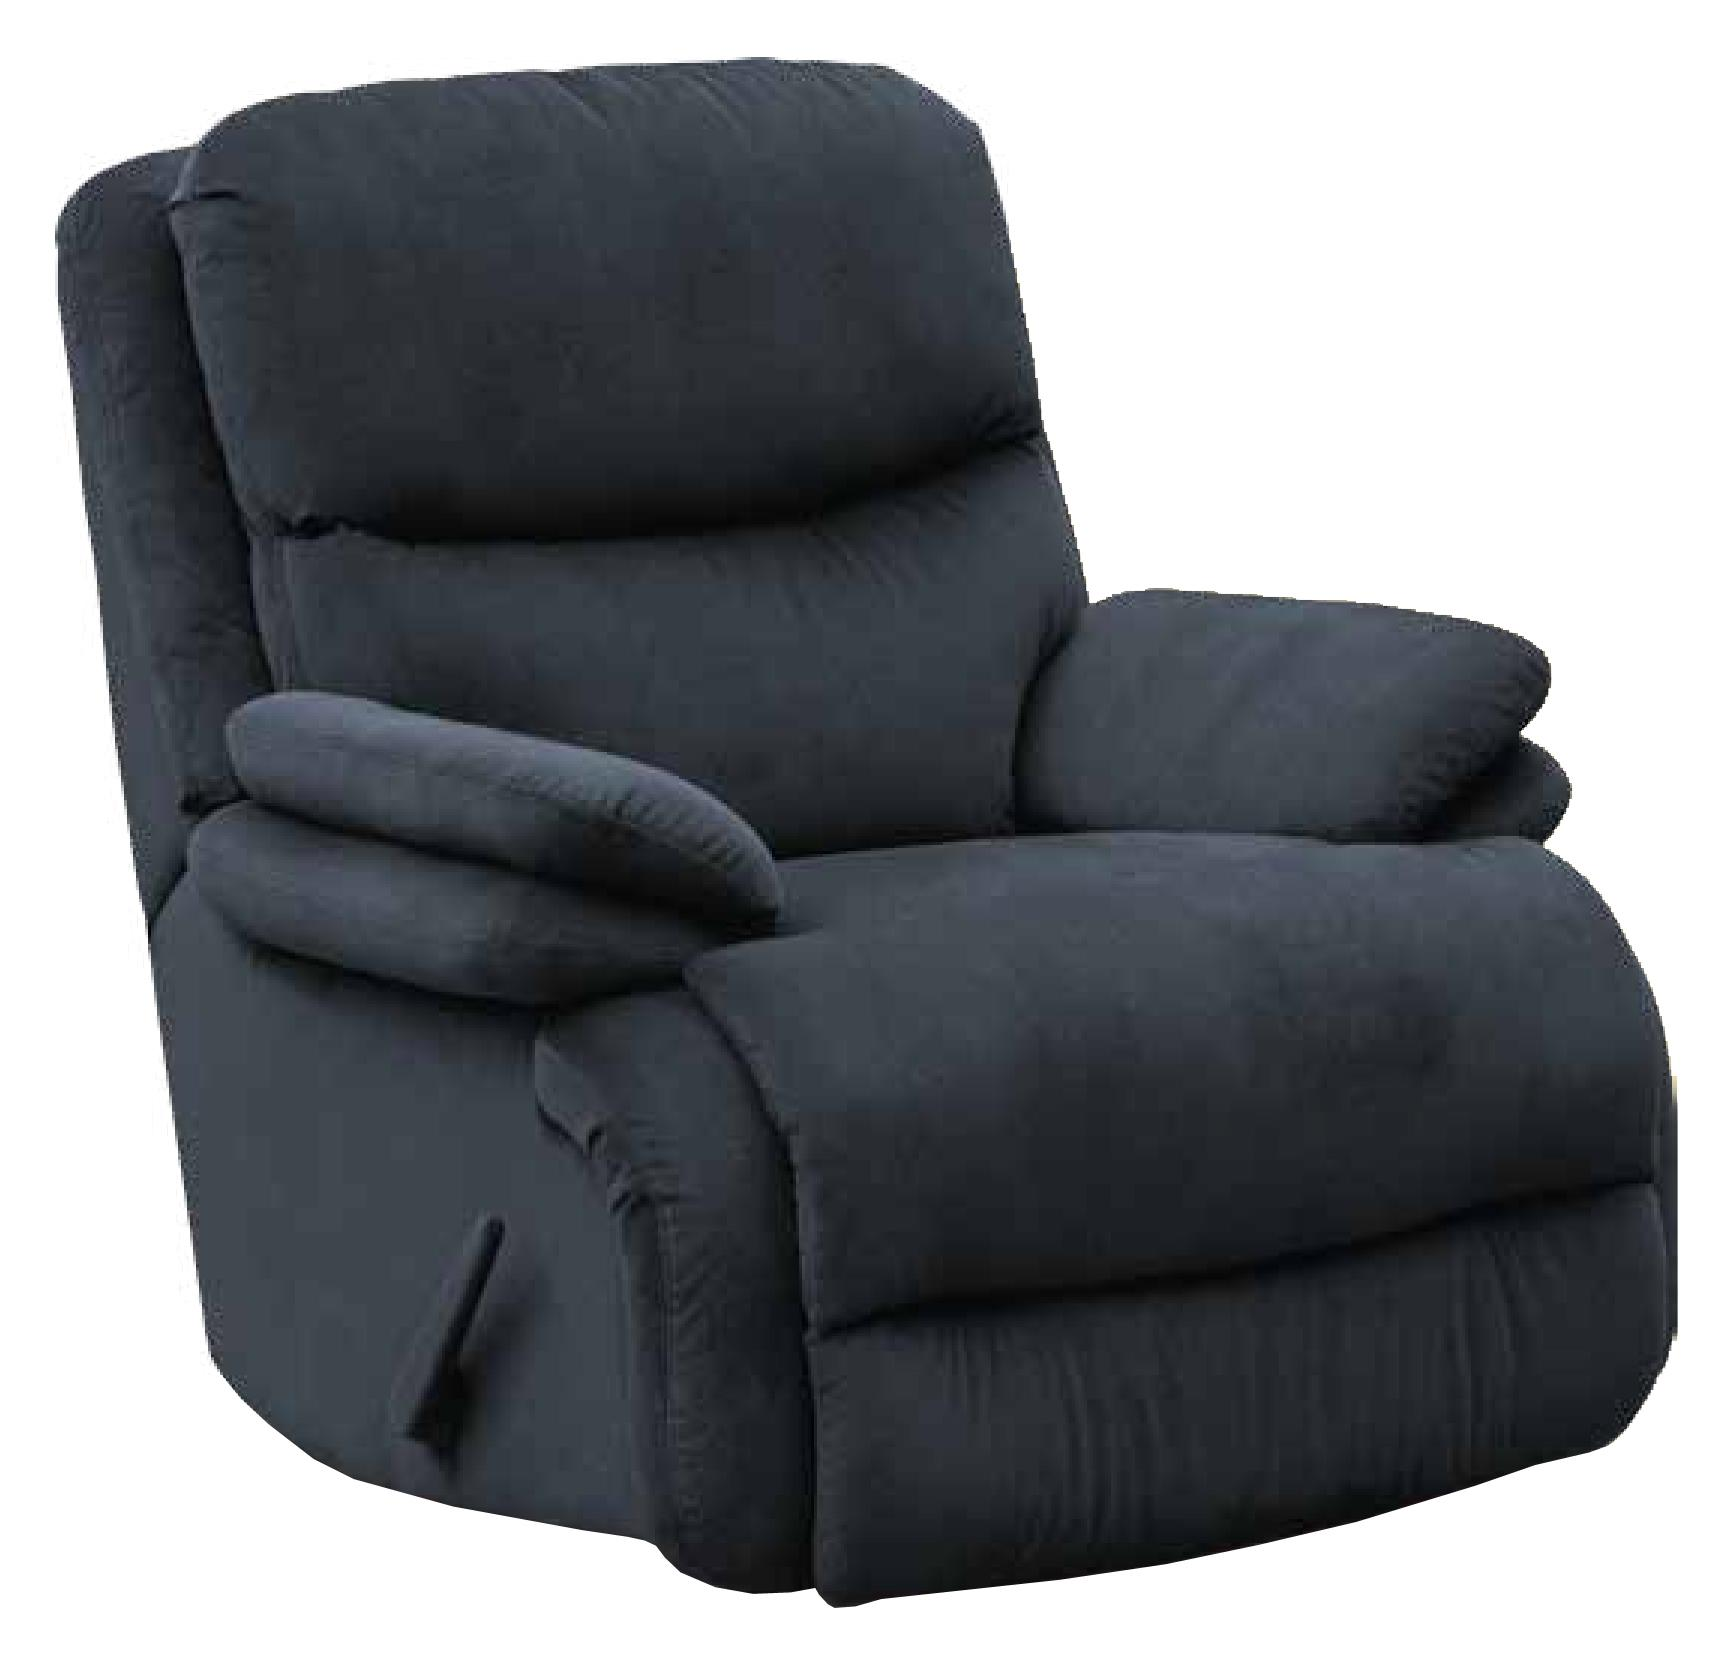 Affinity II Recliner